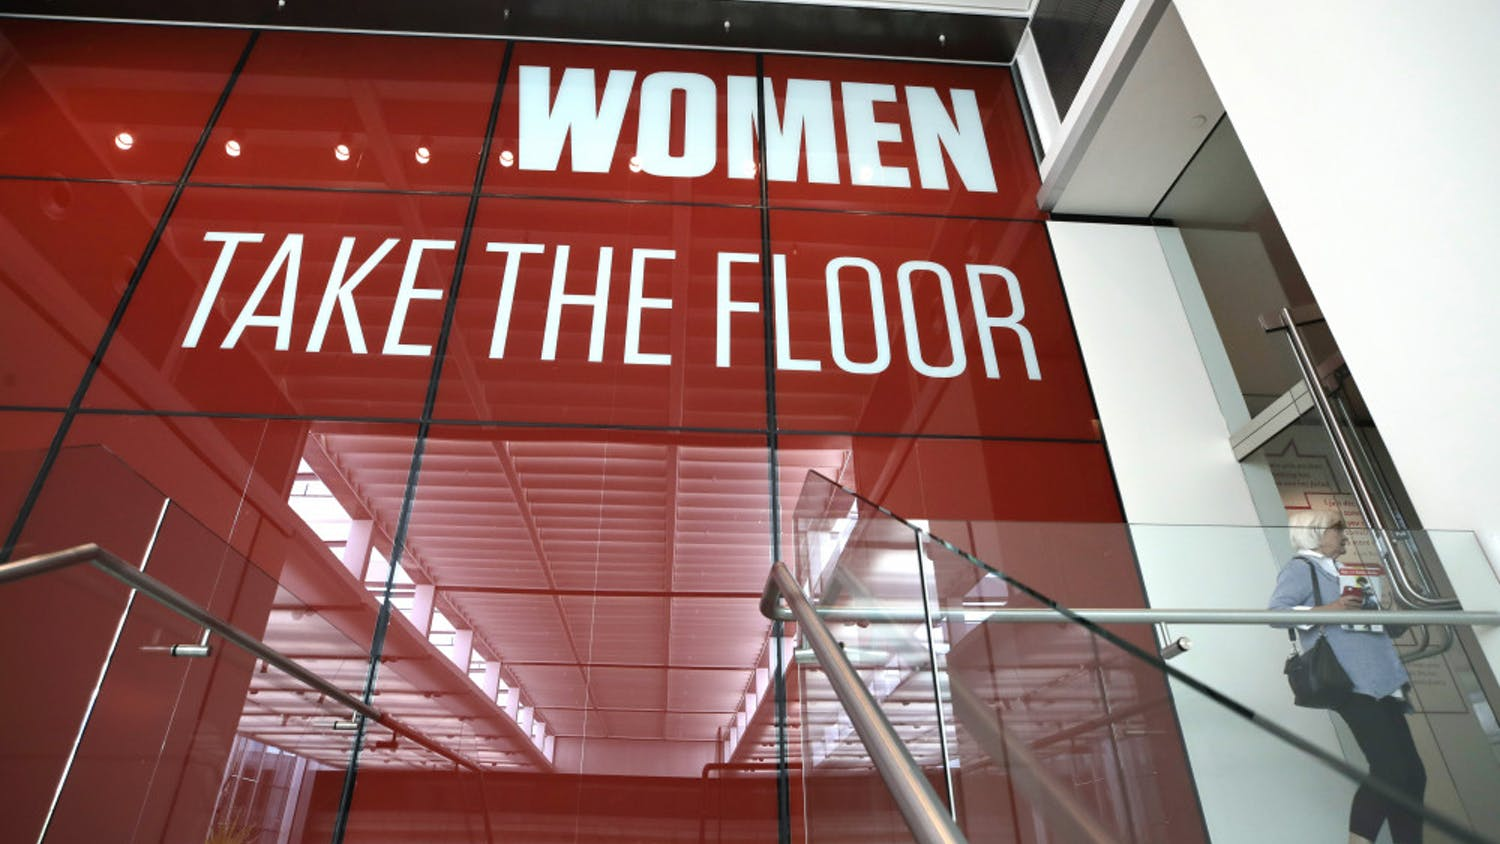 """In this Sept. 18, 2019, photo, a woman enters an exhibit at the Museum of Fine Arts in Boston. In the wake of a student group incident last spring when the world-class museum was accused of racism, the MFA has scrambled to make amends. It has created a new position, senior director of inclusion, in an effort to become a more deliberately diverse organization. In a nod to the need for greater gender equity, it has given over an entire wing to female artists in """"Women Take the Floor,"""" an exhibition timed to coincide with next year's centennial of U.S. women winning the right to vote. (AP Photo/Elise Amendola)"""